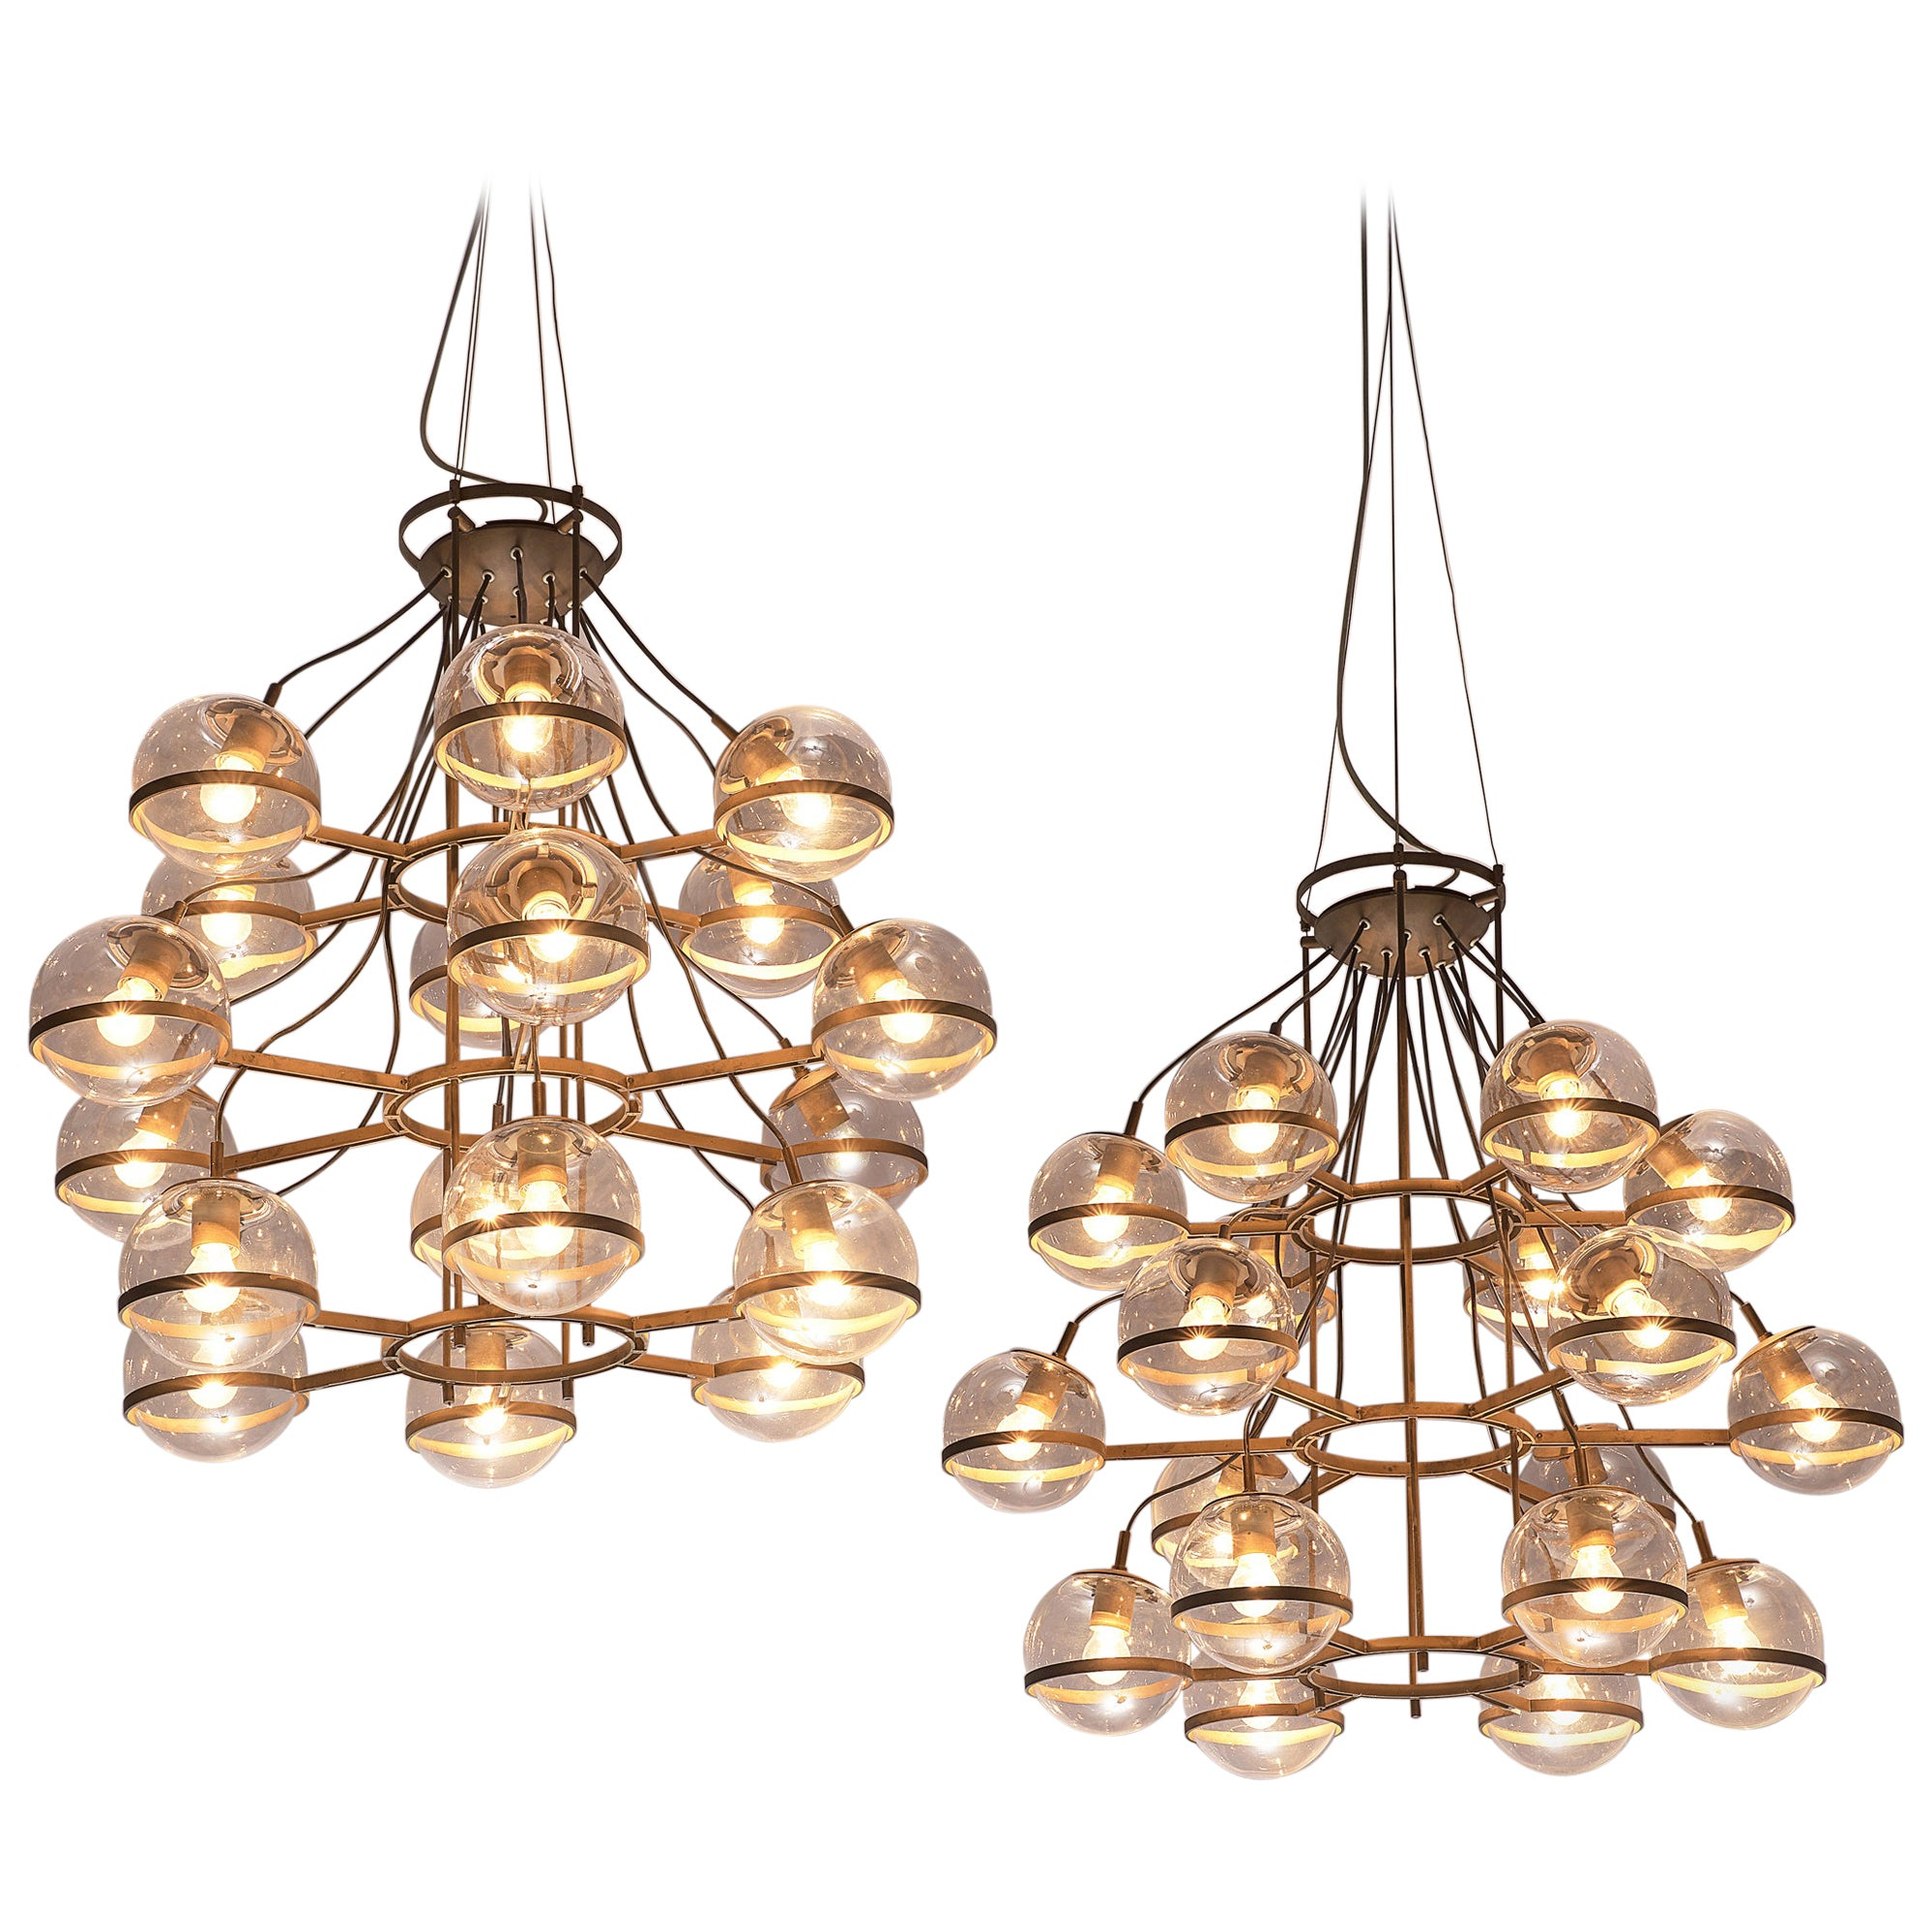 Large French Brass Chandeliers with Eighteen-Glass Spheres